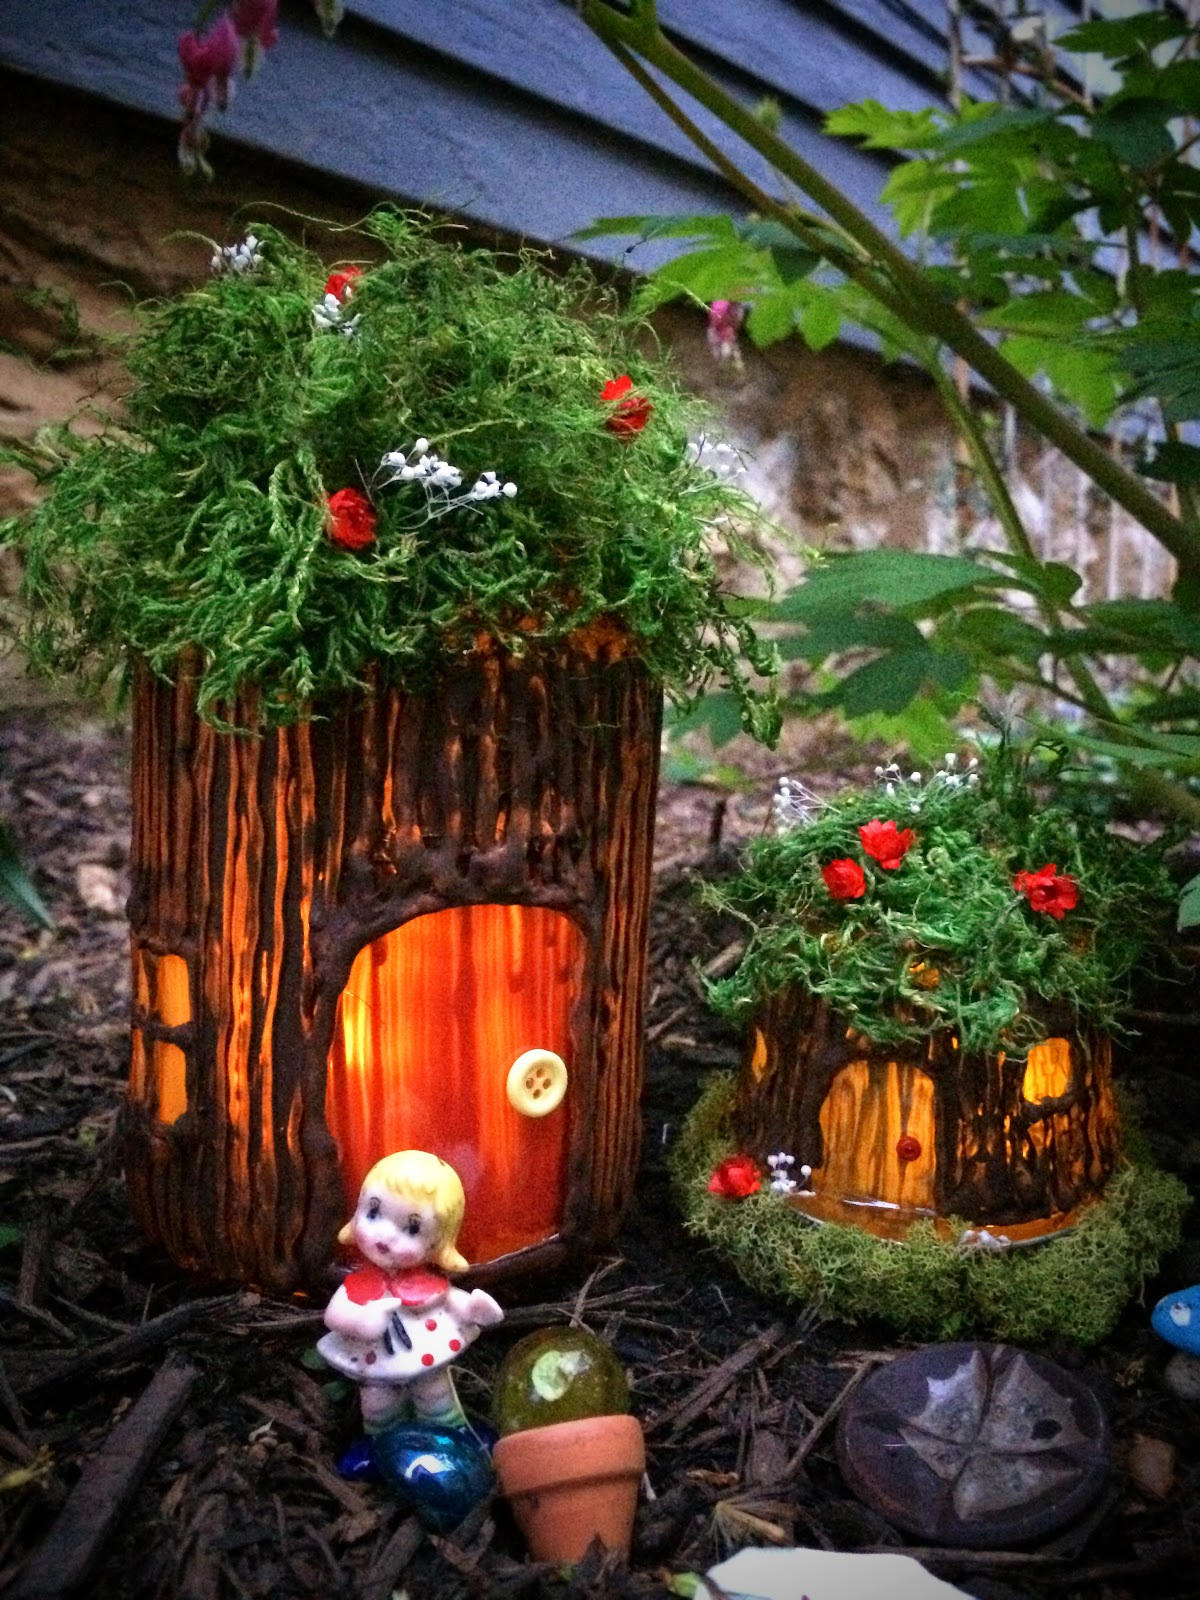 Car Wallpaper Hd 1080p Free Download For Mobile Fairy Houses Wallpapers High Quality Download Free